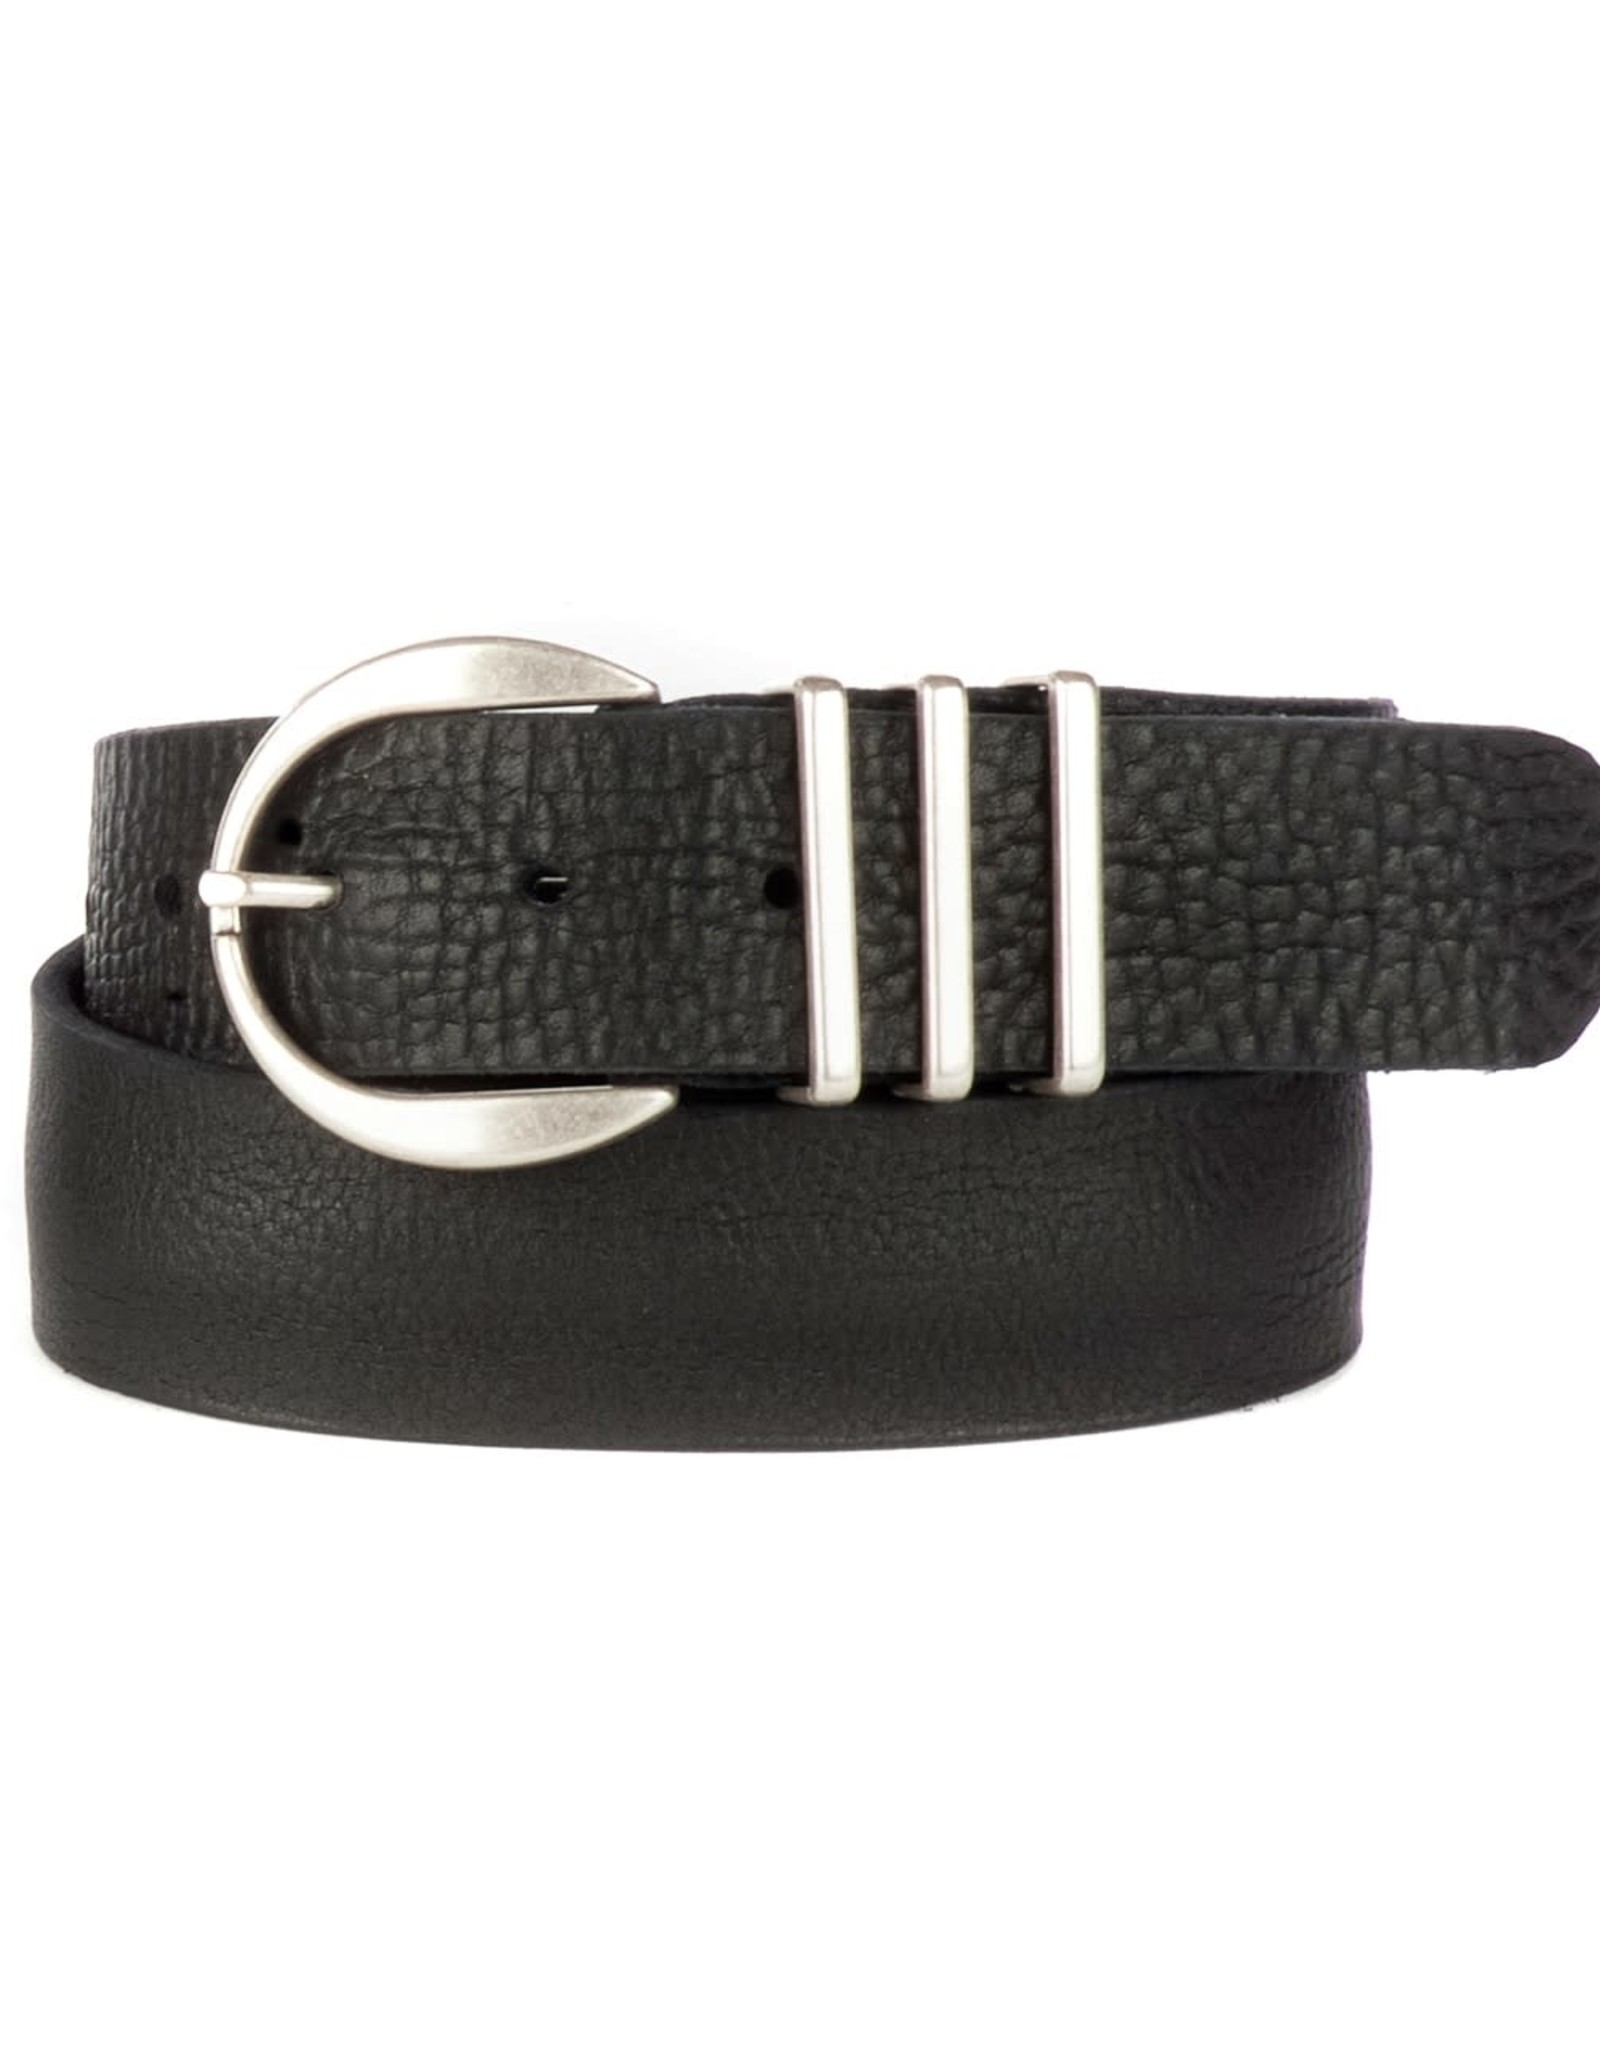 Brave Leather  Kiku Belt Washed Black